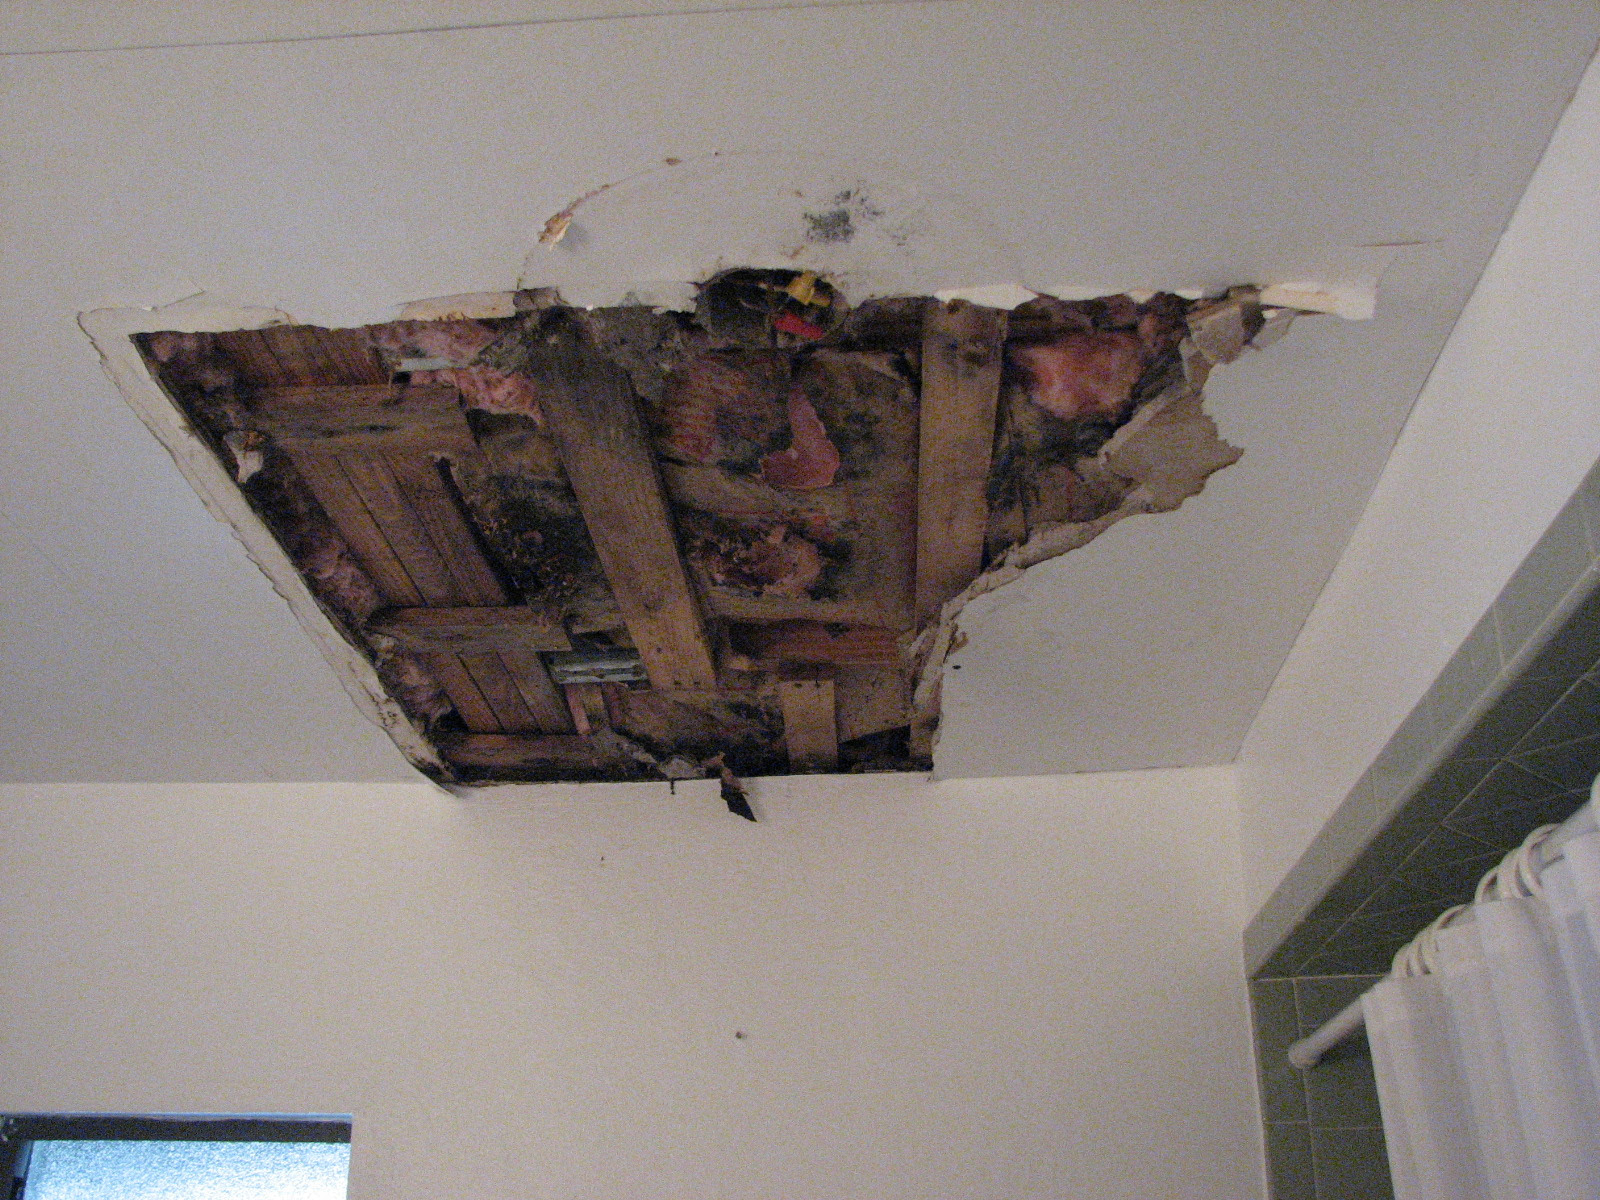 Ceiling Damage From Water Leak